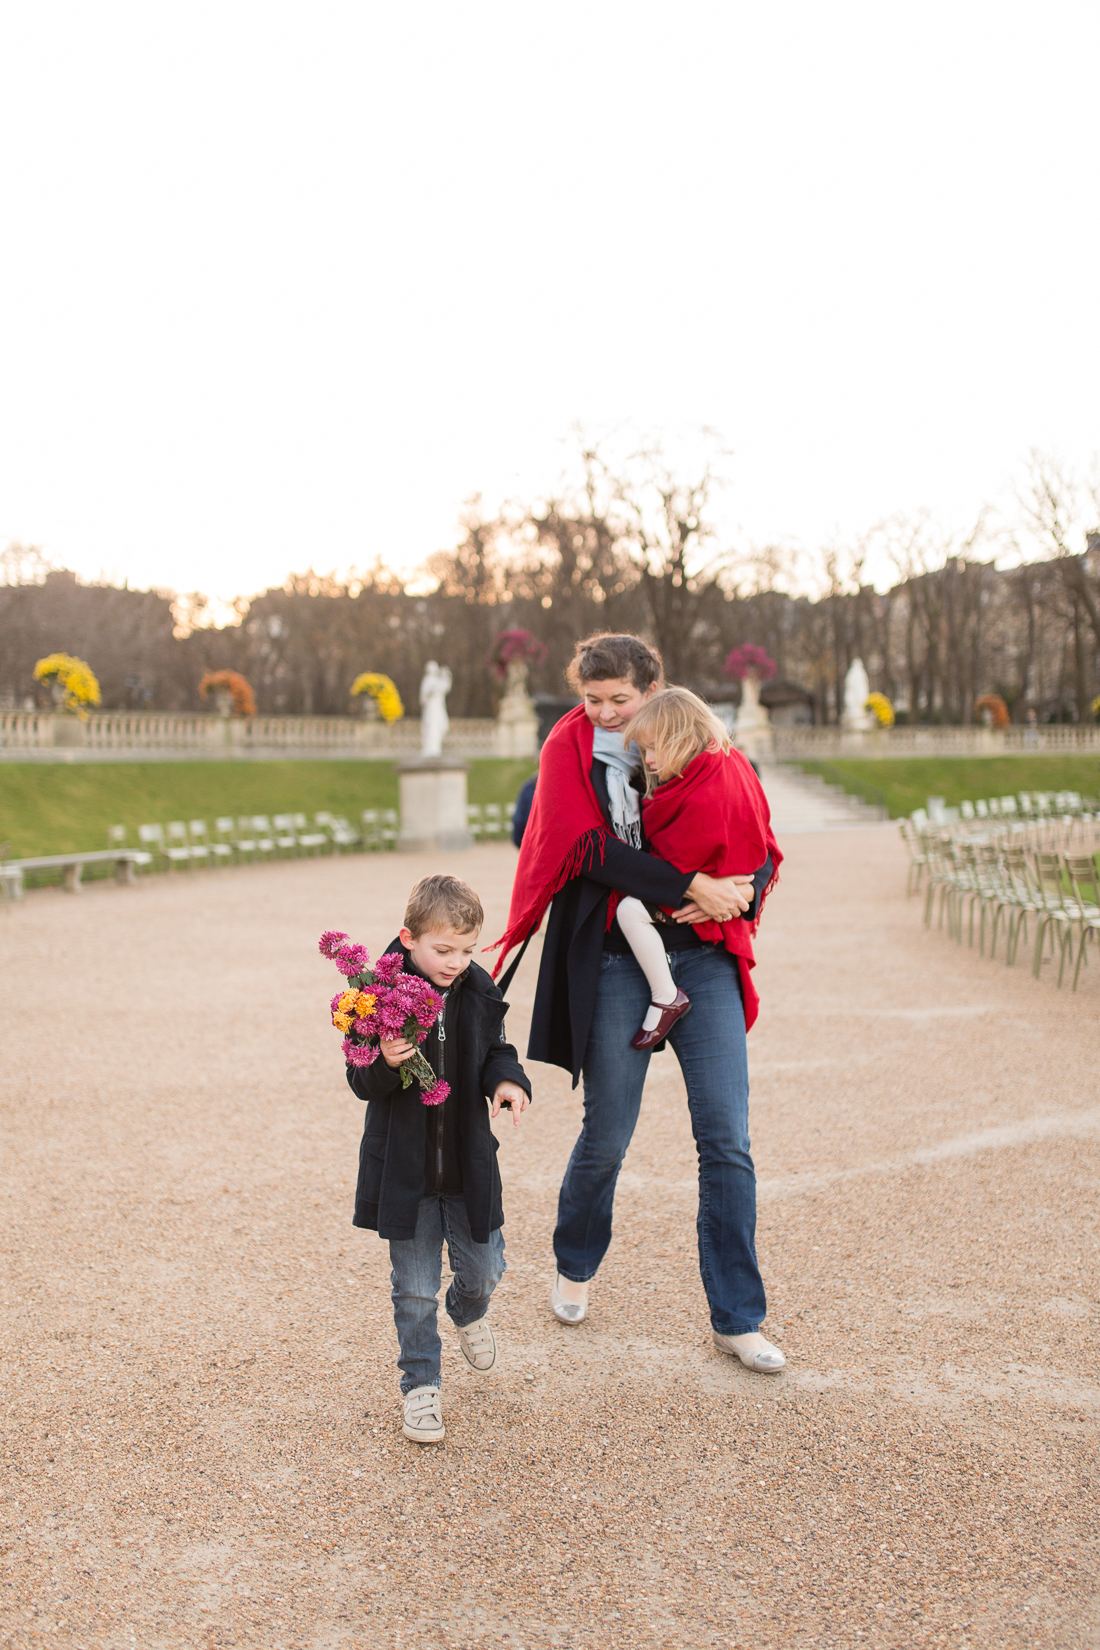 winter-family-photo-session-ideas-paris-photographer-5